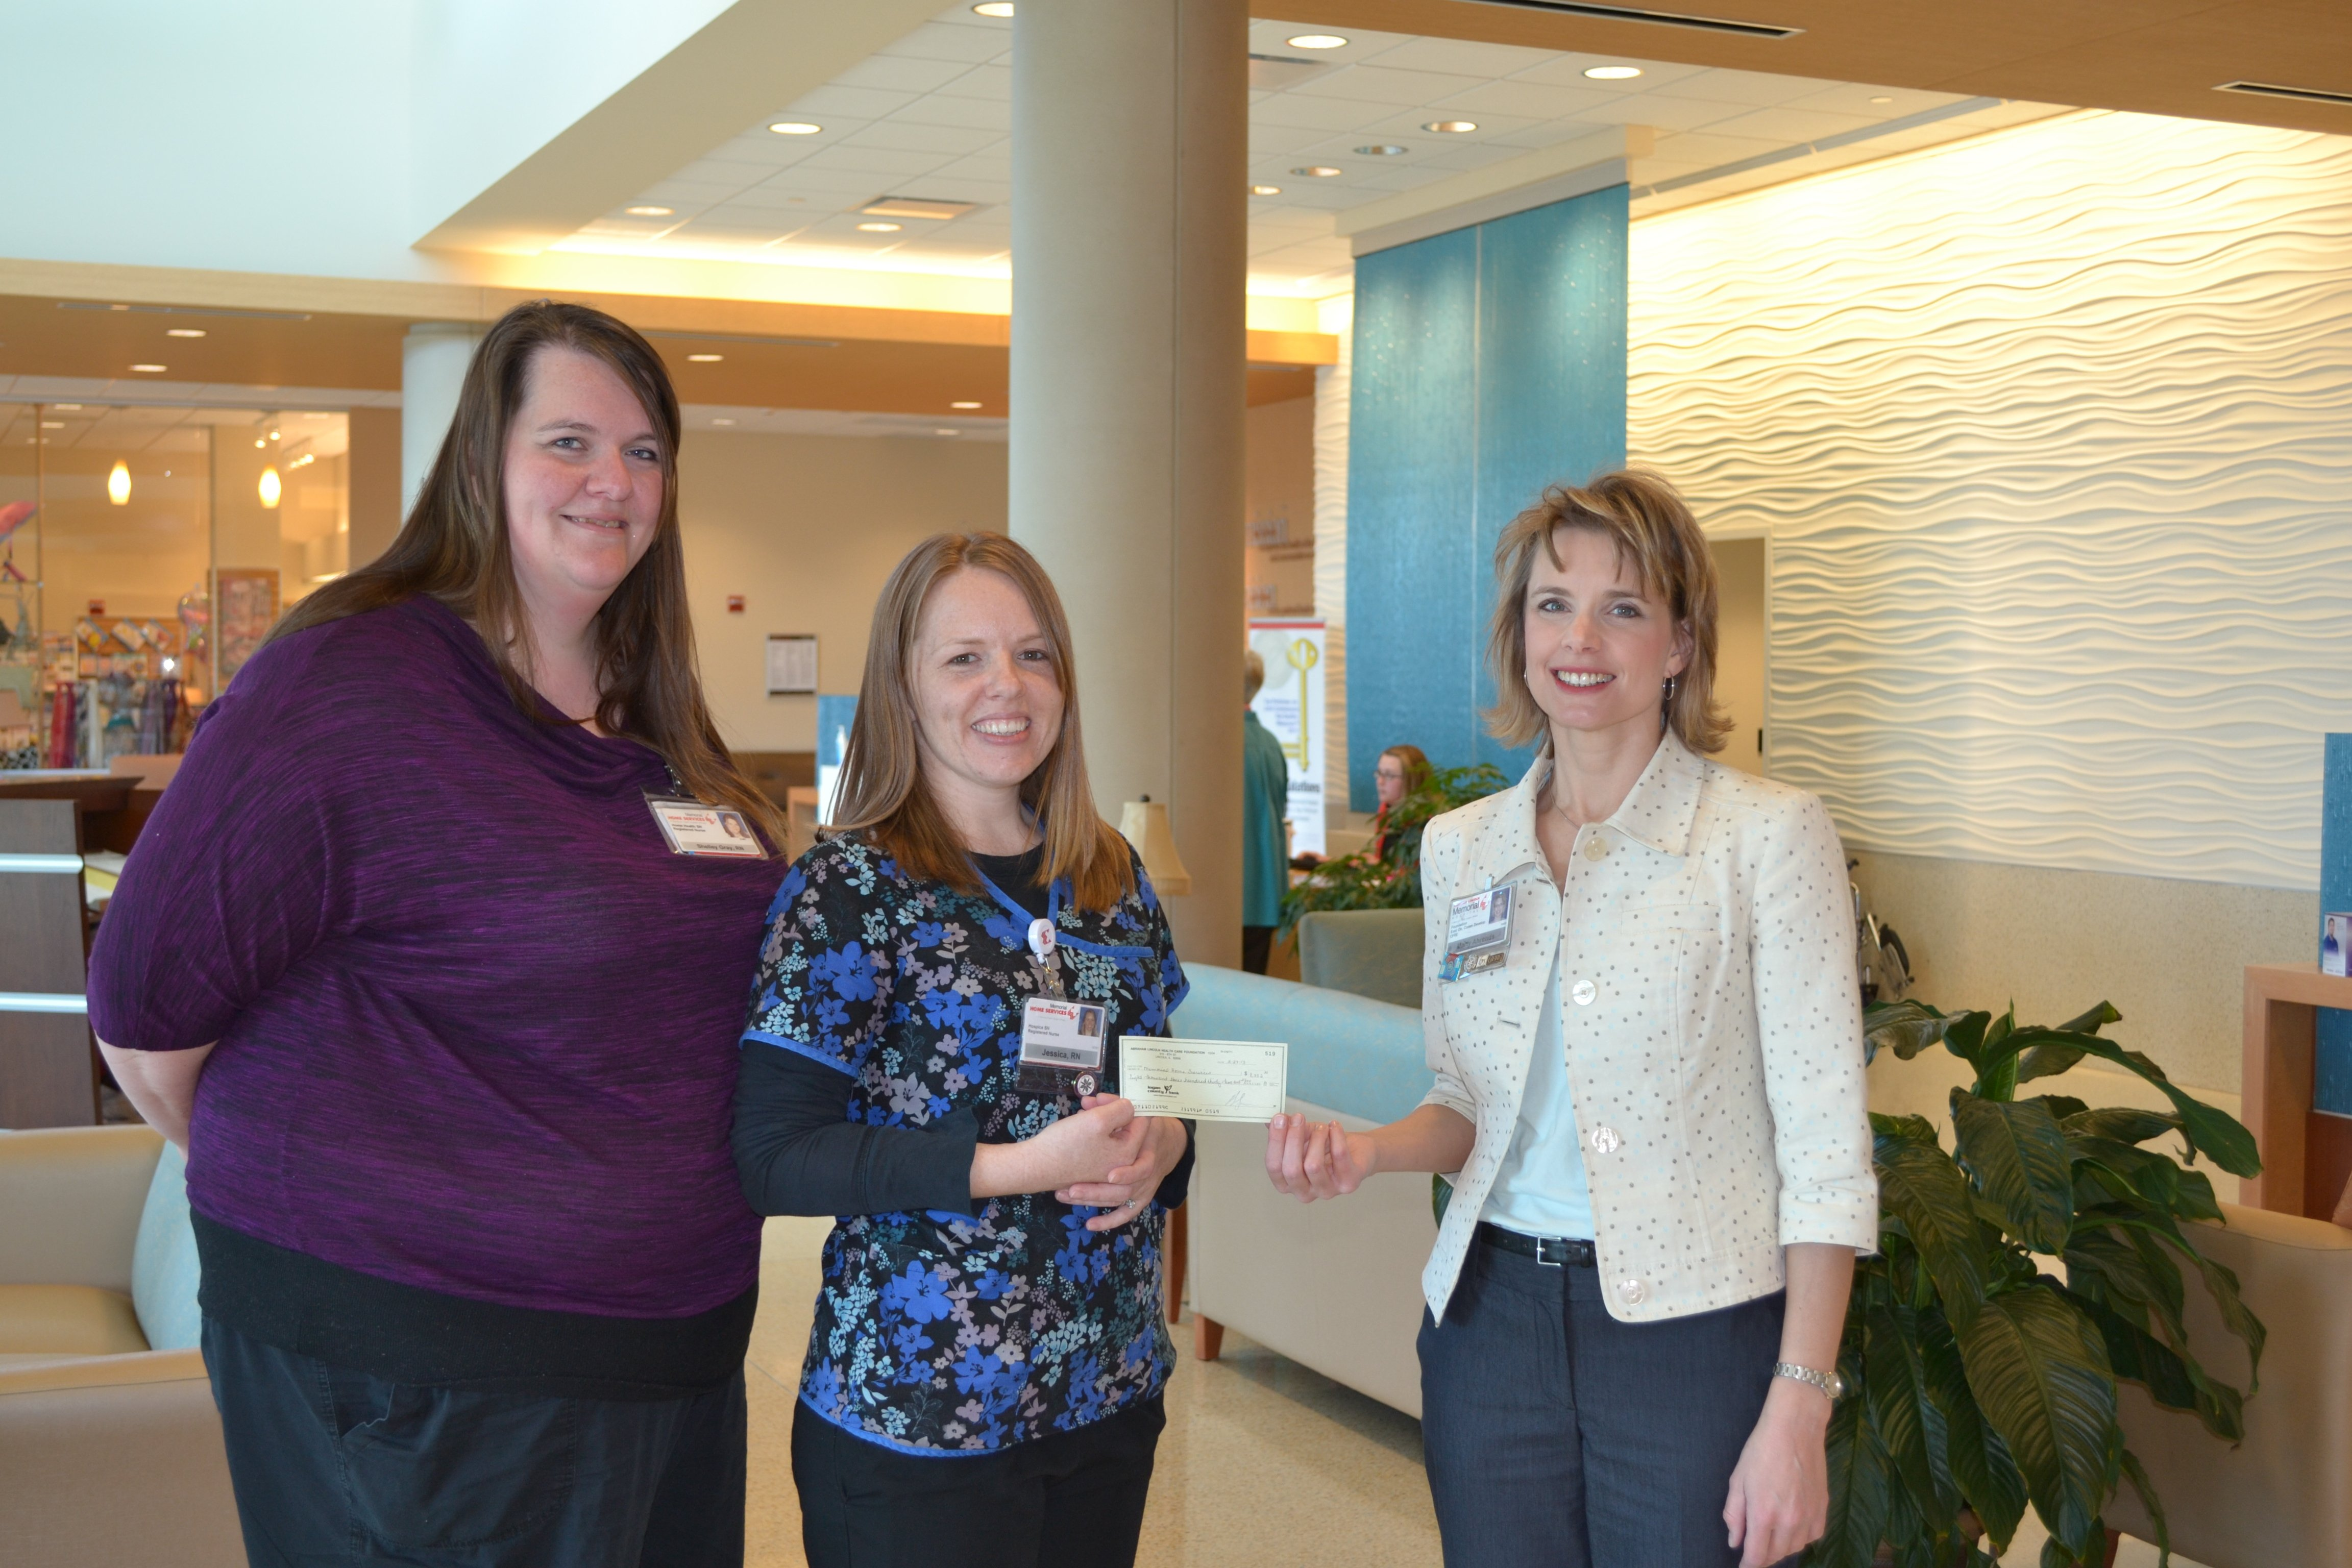 Picture provided by ALMH: From L-R: Shelley Gray, RN, Jessica Spiedel and Marty Ahrends, ALHFoundation Executive Director